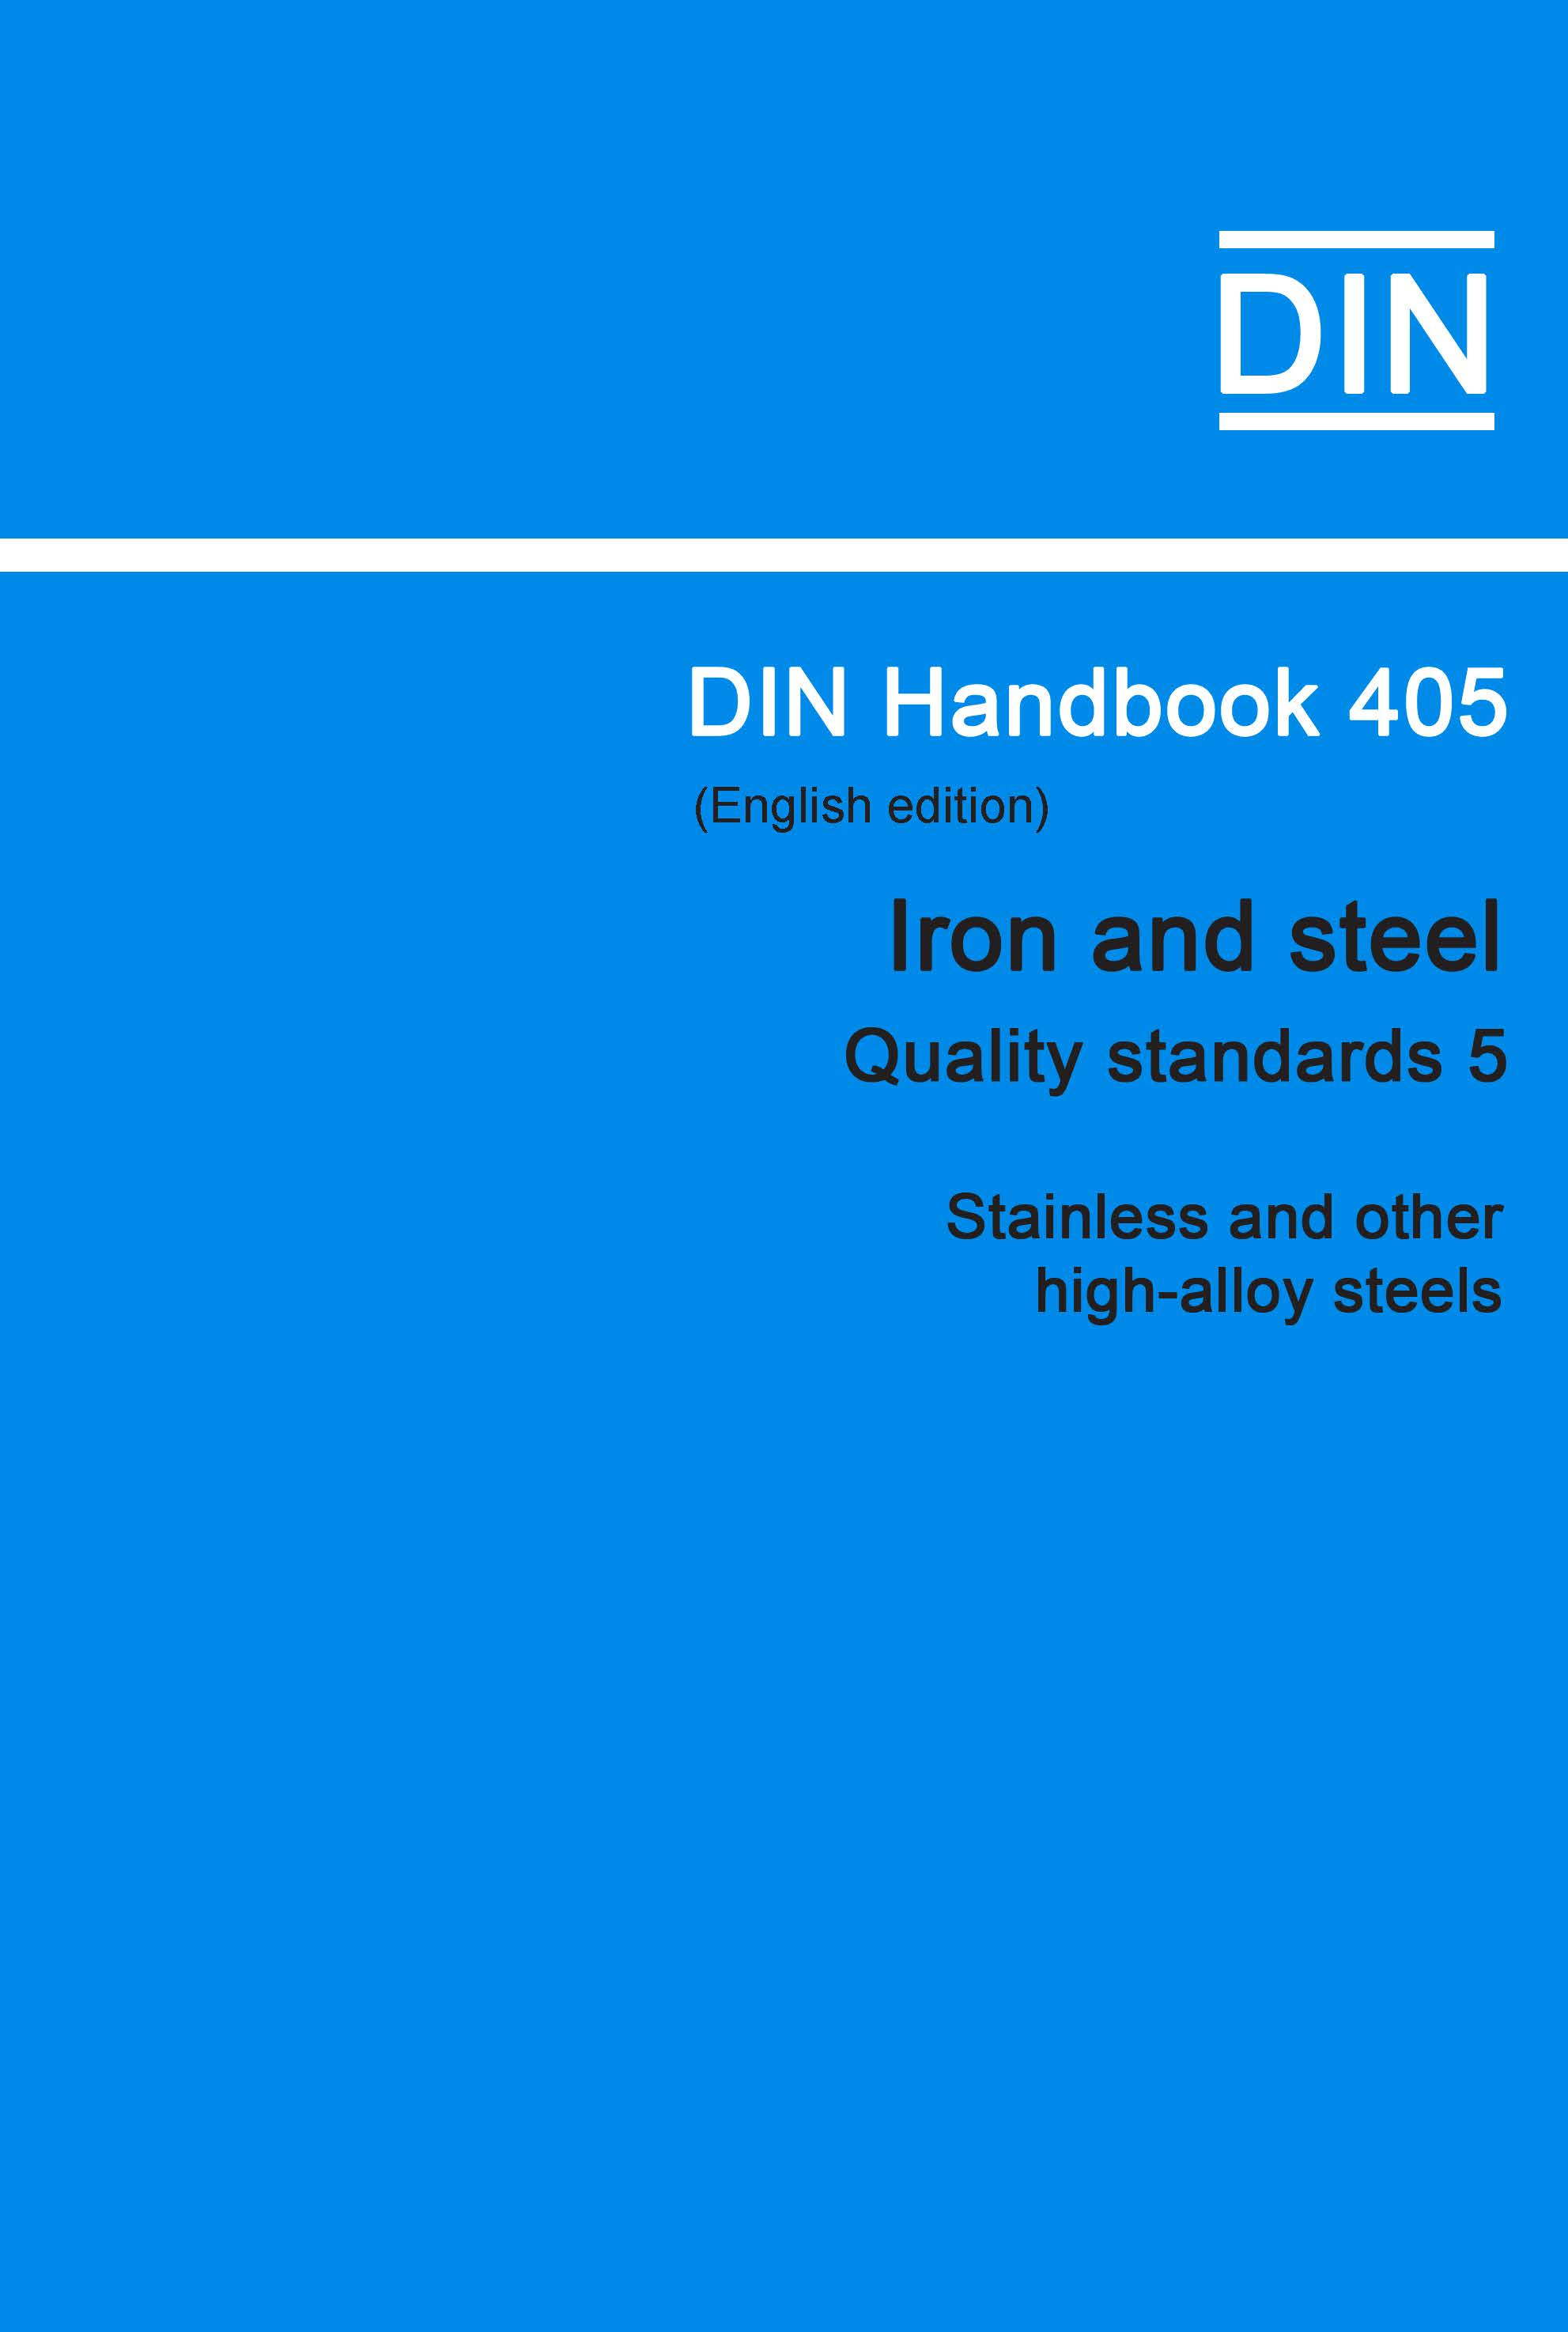 (DIN Handbook  405 Iron And Steel (Quality Standar...